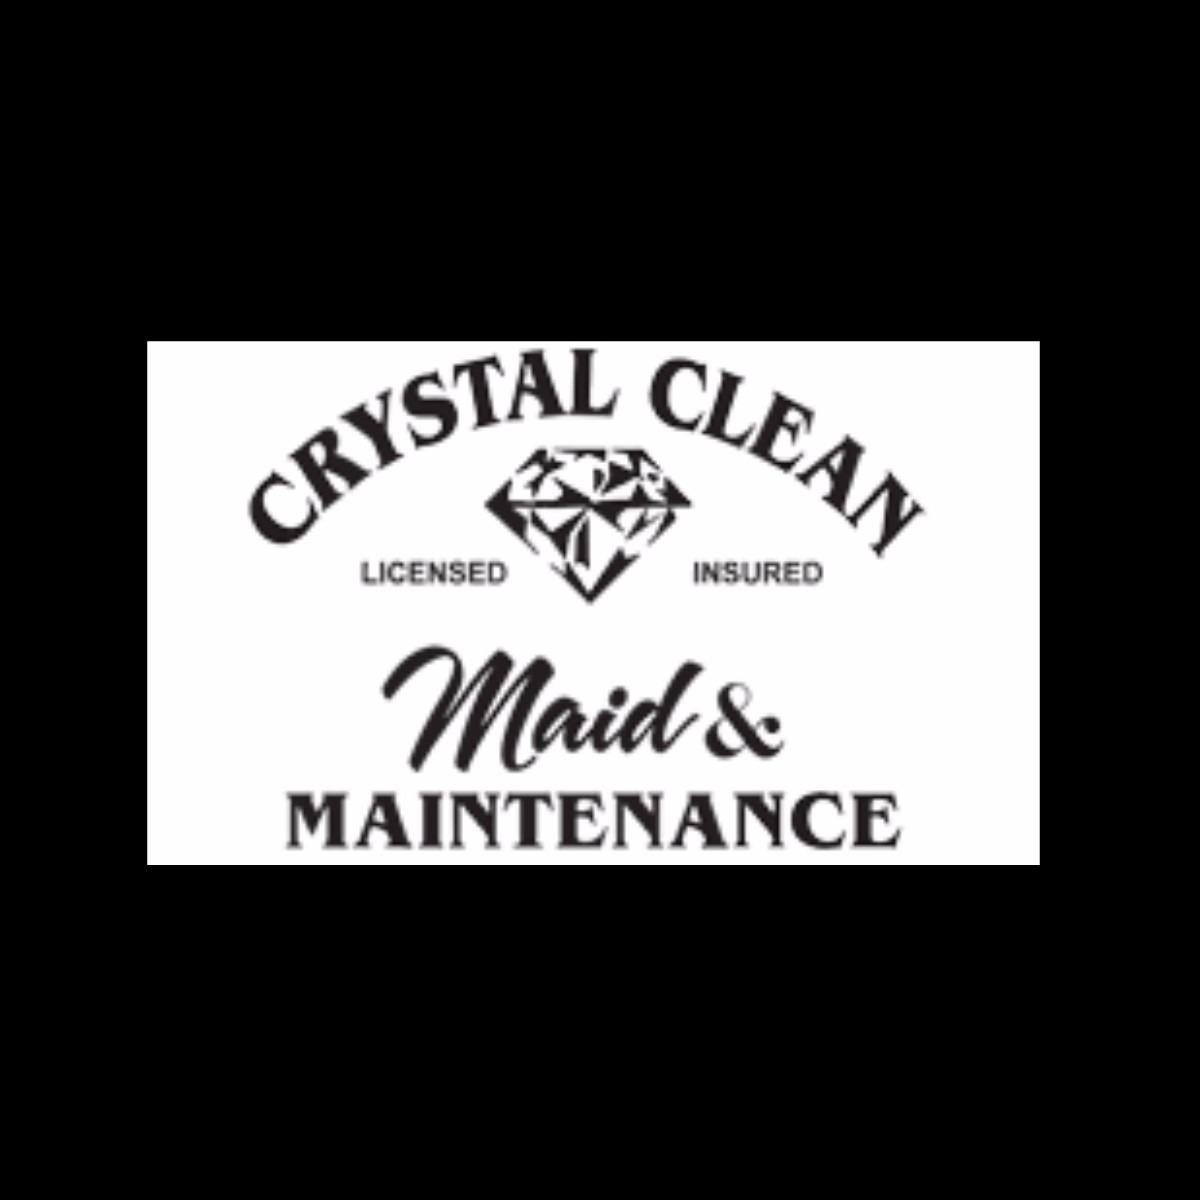 Crystal Clean MAID AND MAINTENANCE INC - North Myrtle Beach, SC - House Cleaning Services